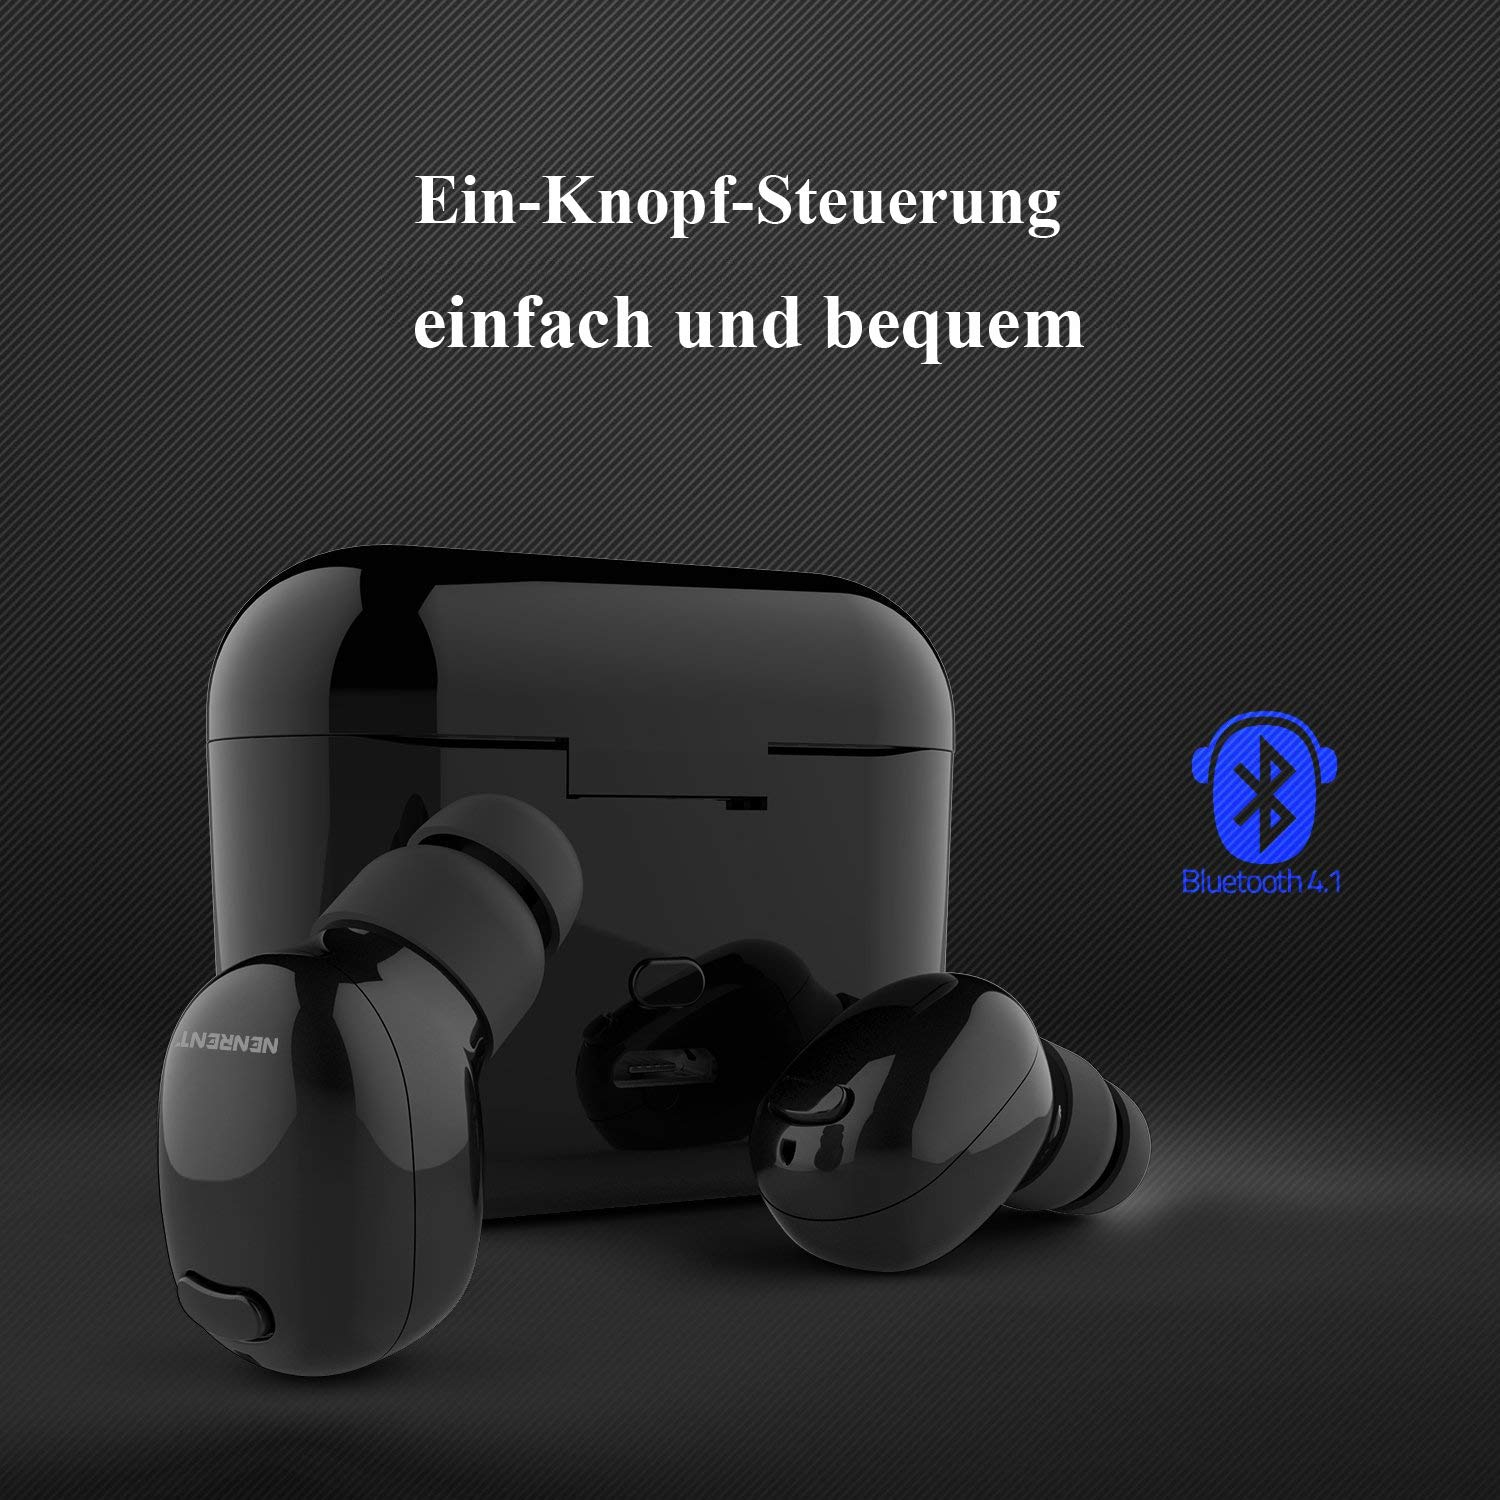 NENRENT S570 TWS Bluetooth Earbuds 5.0 Ture Wireless Earpiece HD Stereo Audio Sound Wireless Bluetooth Headphones with Charging Case 24 H Music Playtime